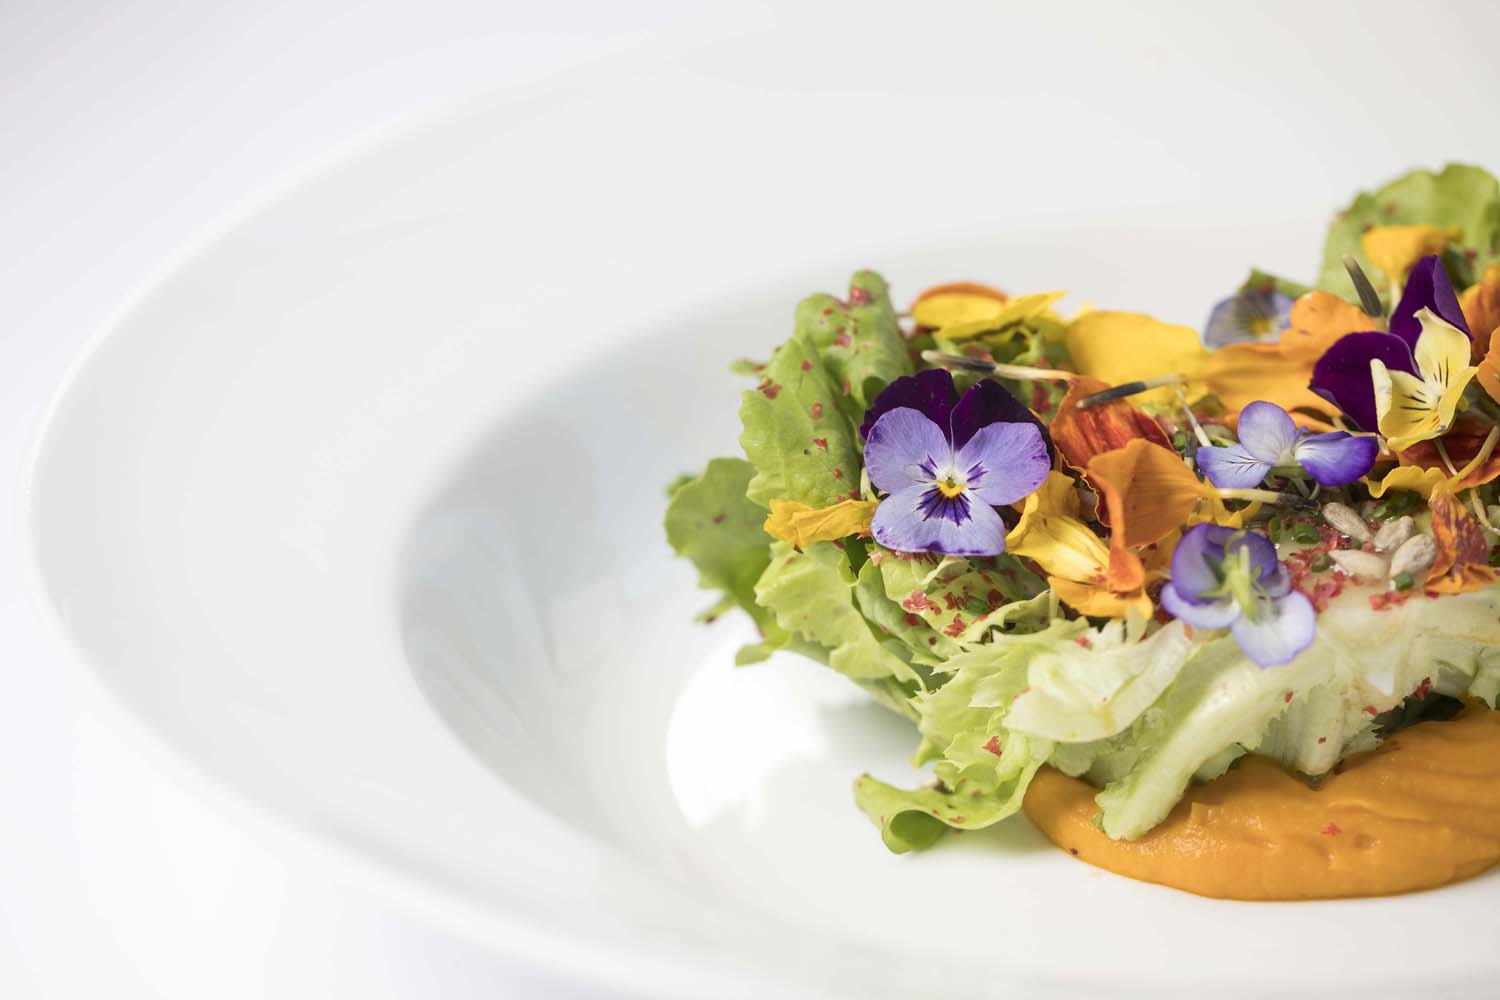 Main plated salad with flowers